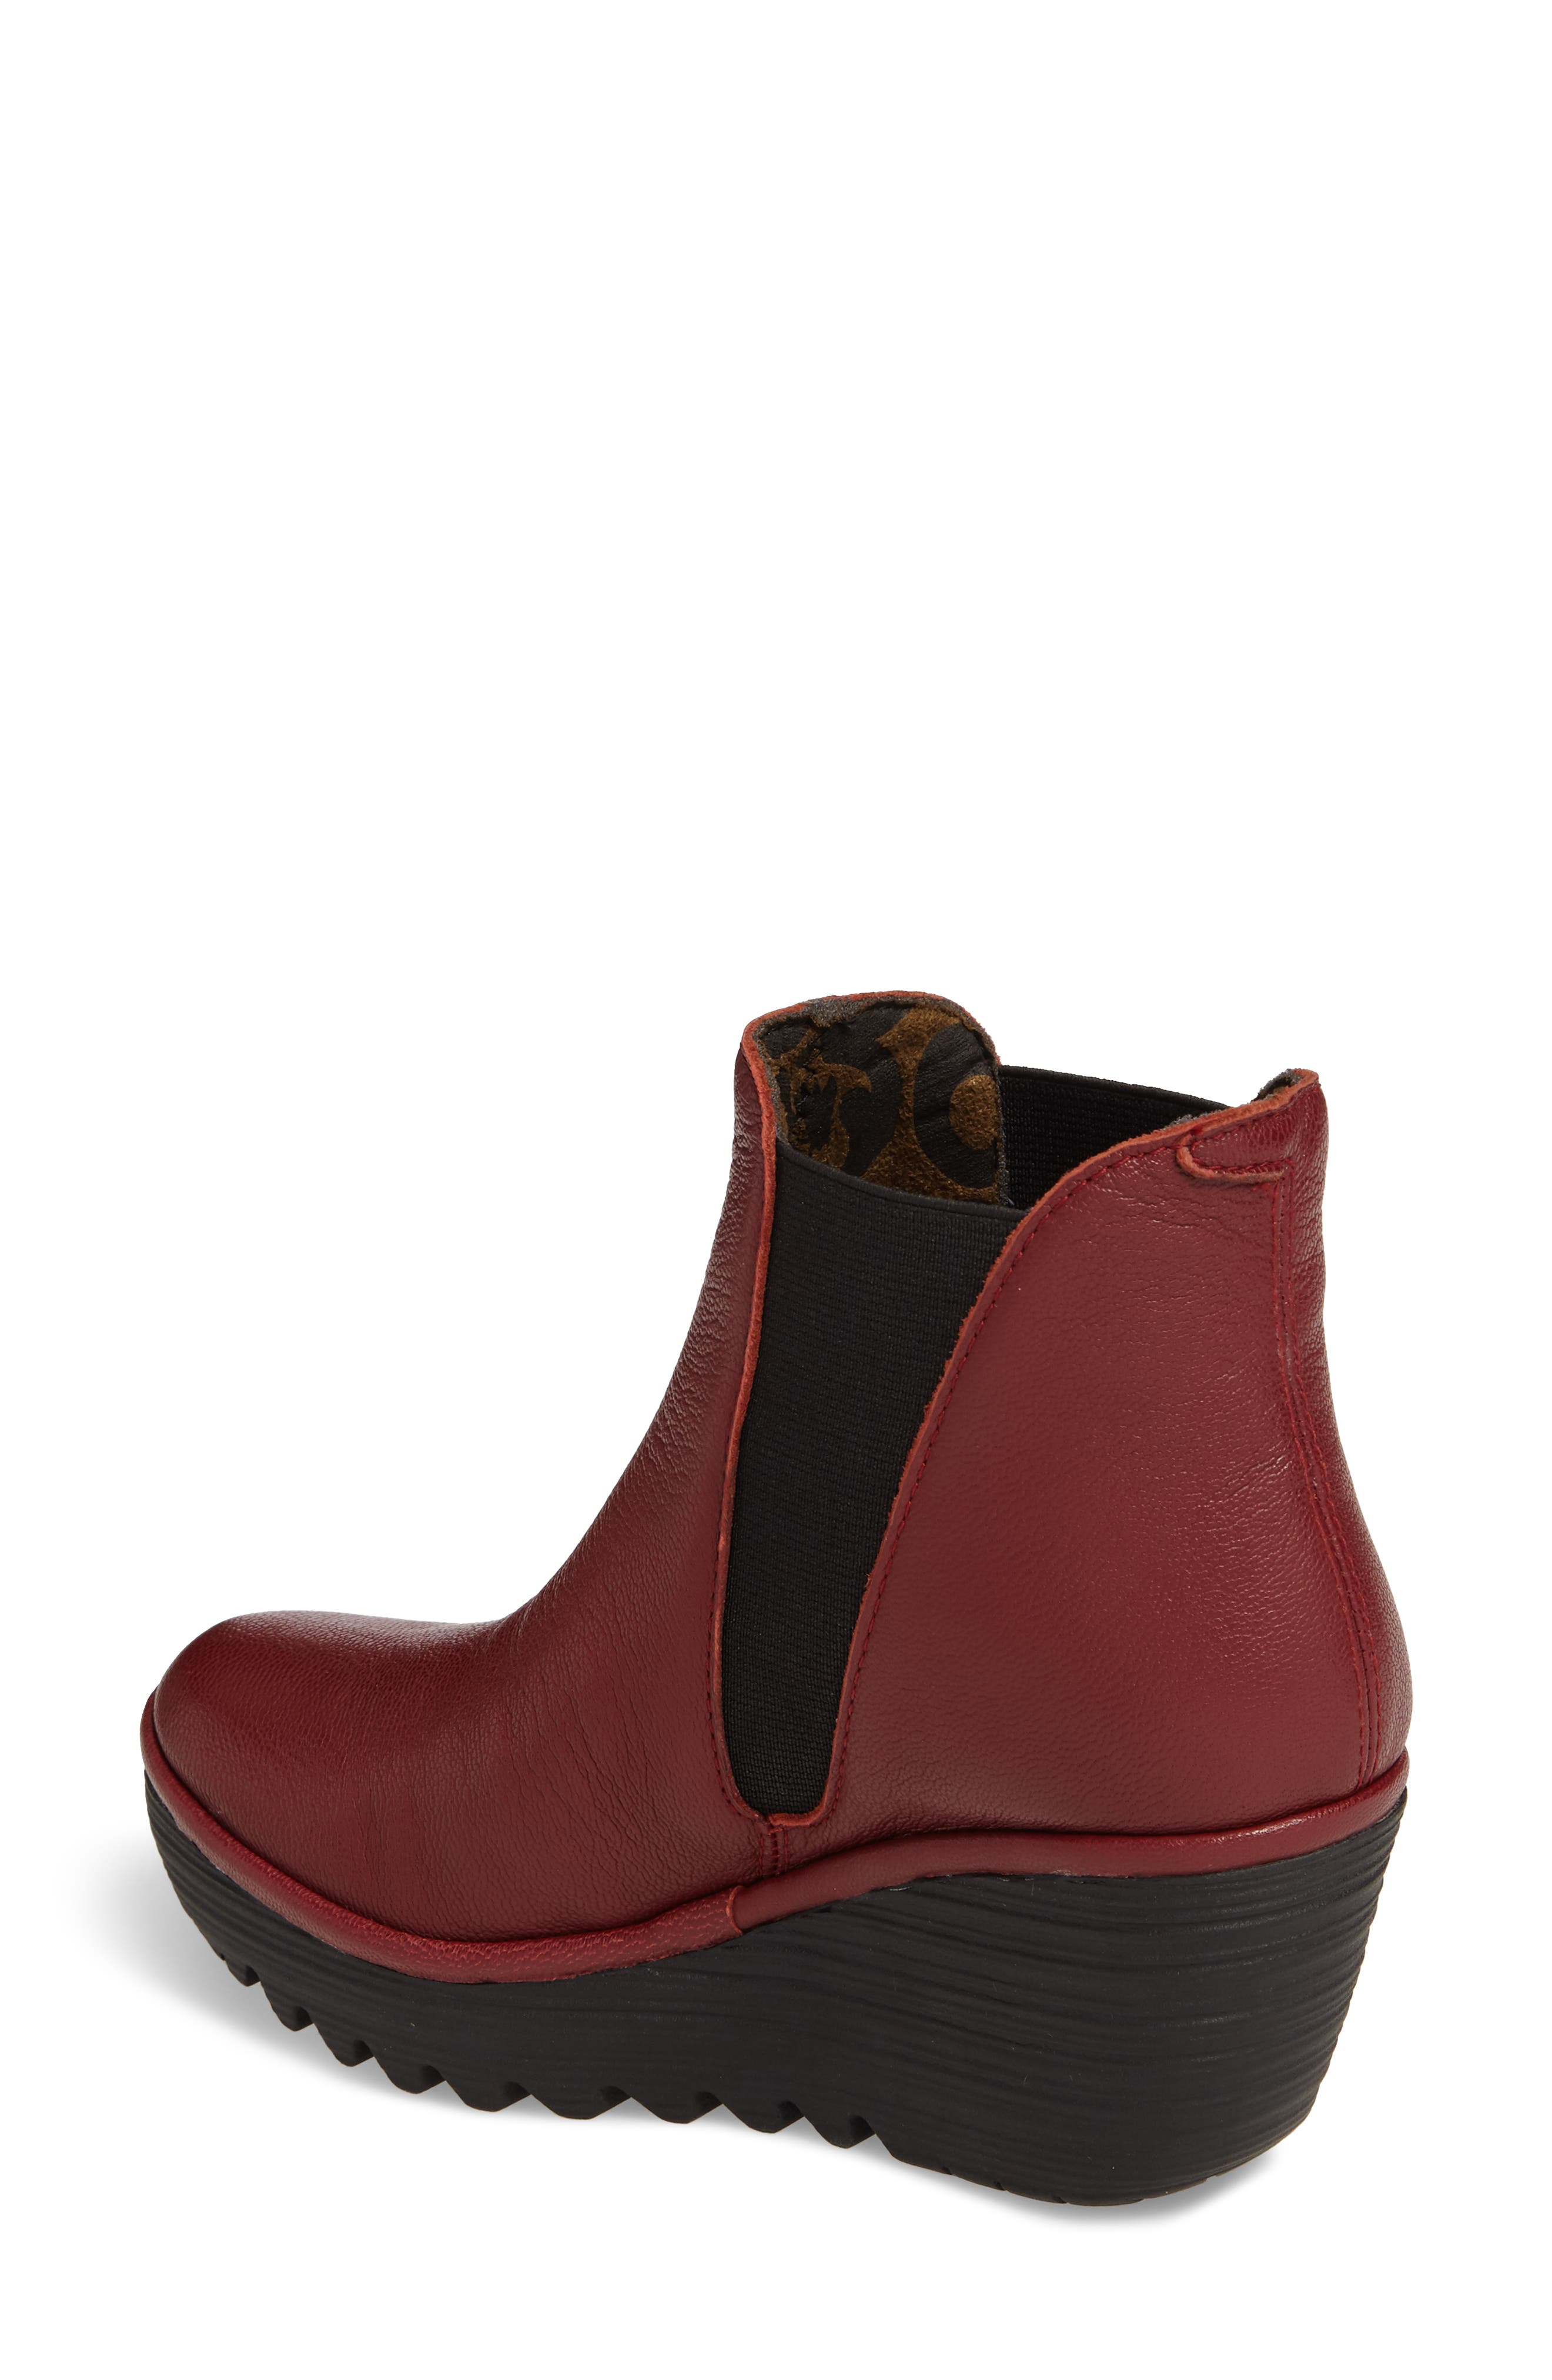 Yoss Wedge Bootie,                             Alternate thumbnail 2, color,                             Cordoba Red Leather